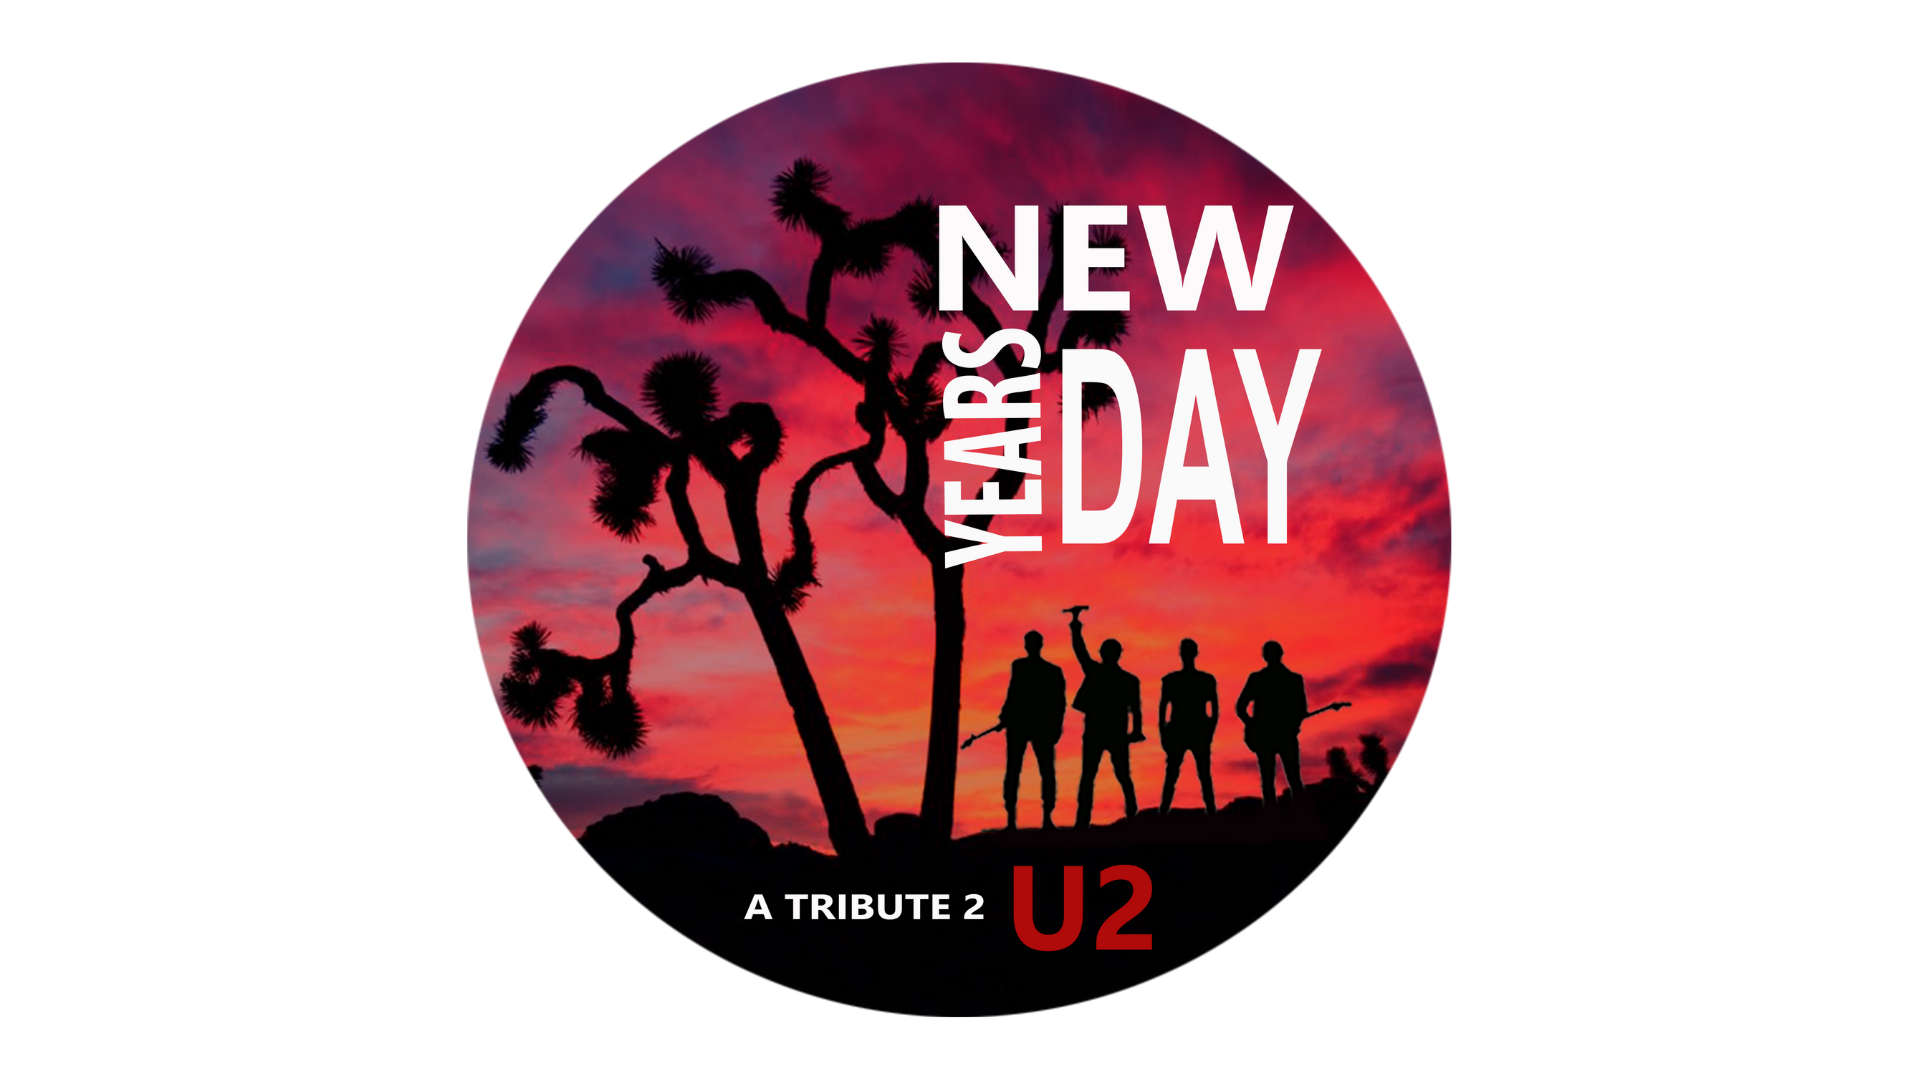 Promo image of New Years Day (U2 Tribute)